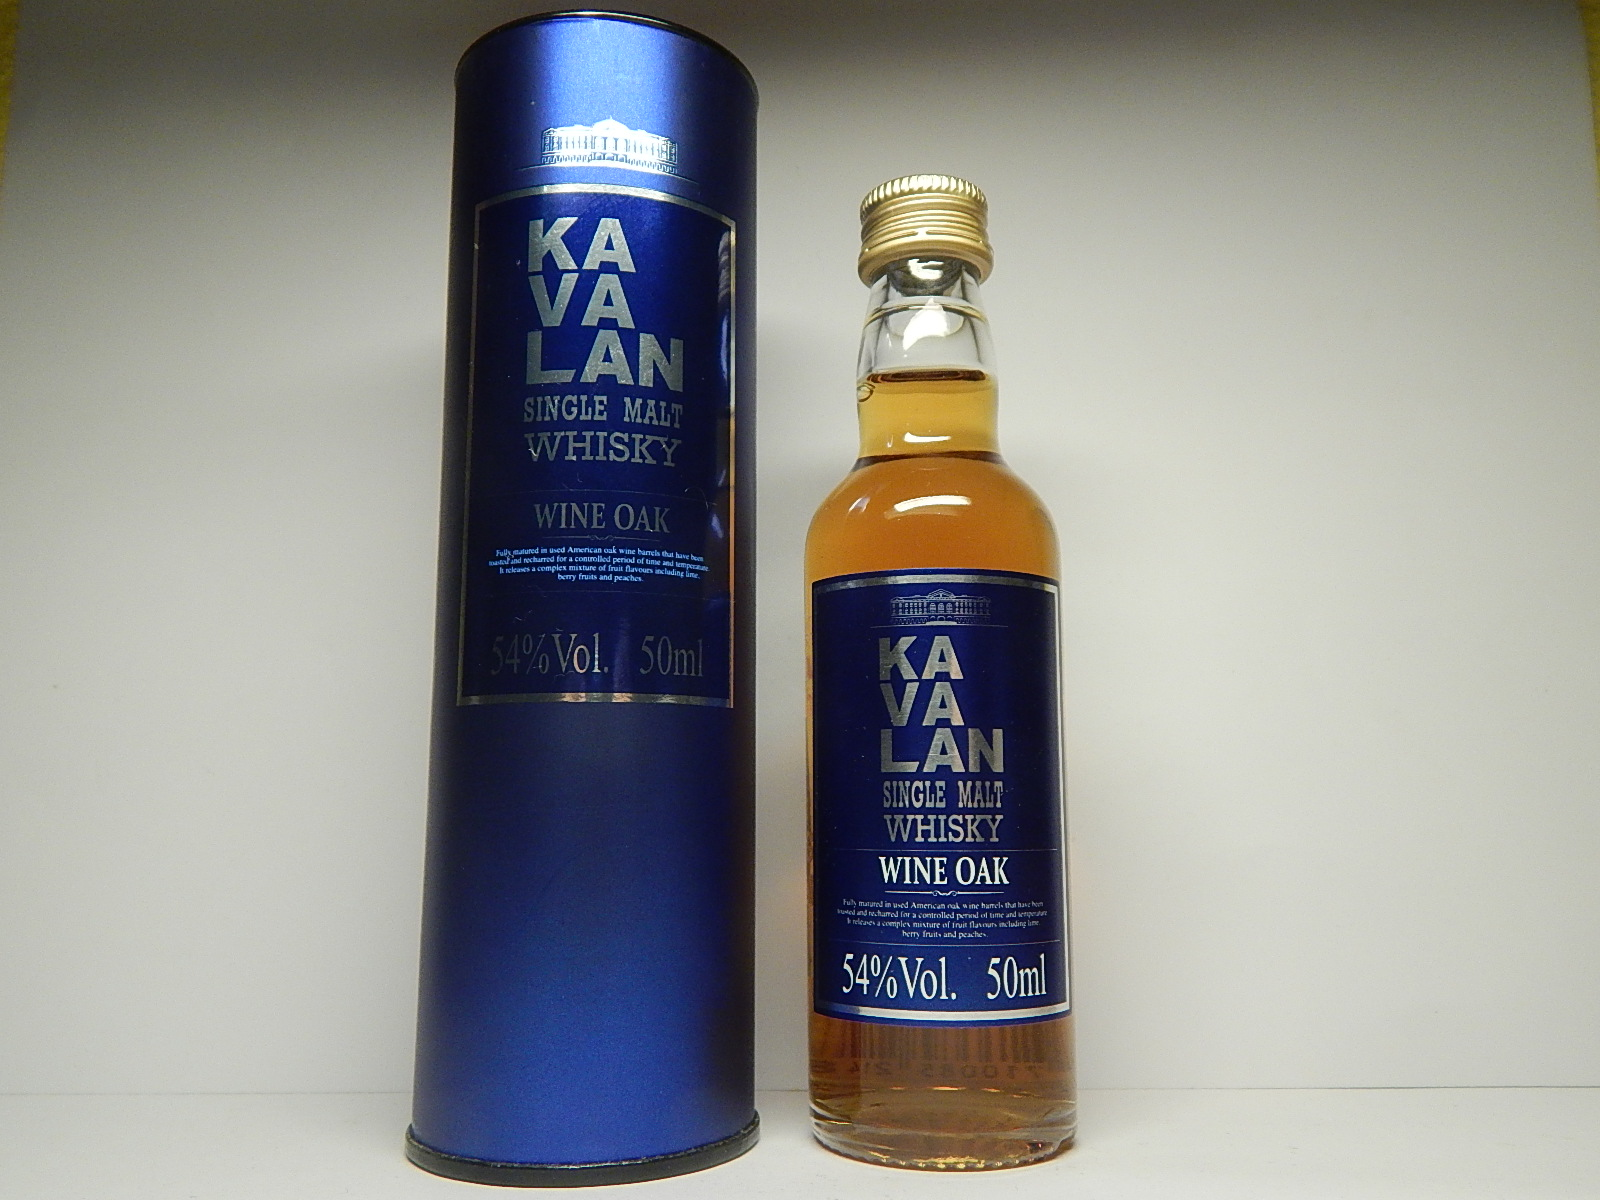 KAVALAN WINE OAK Single Malt Whisky